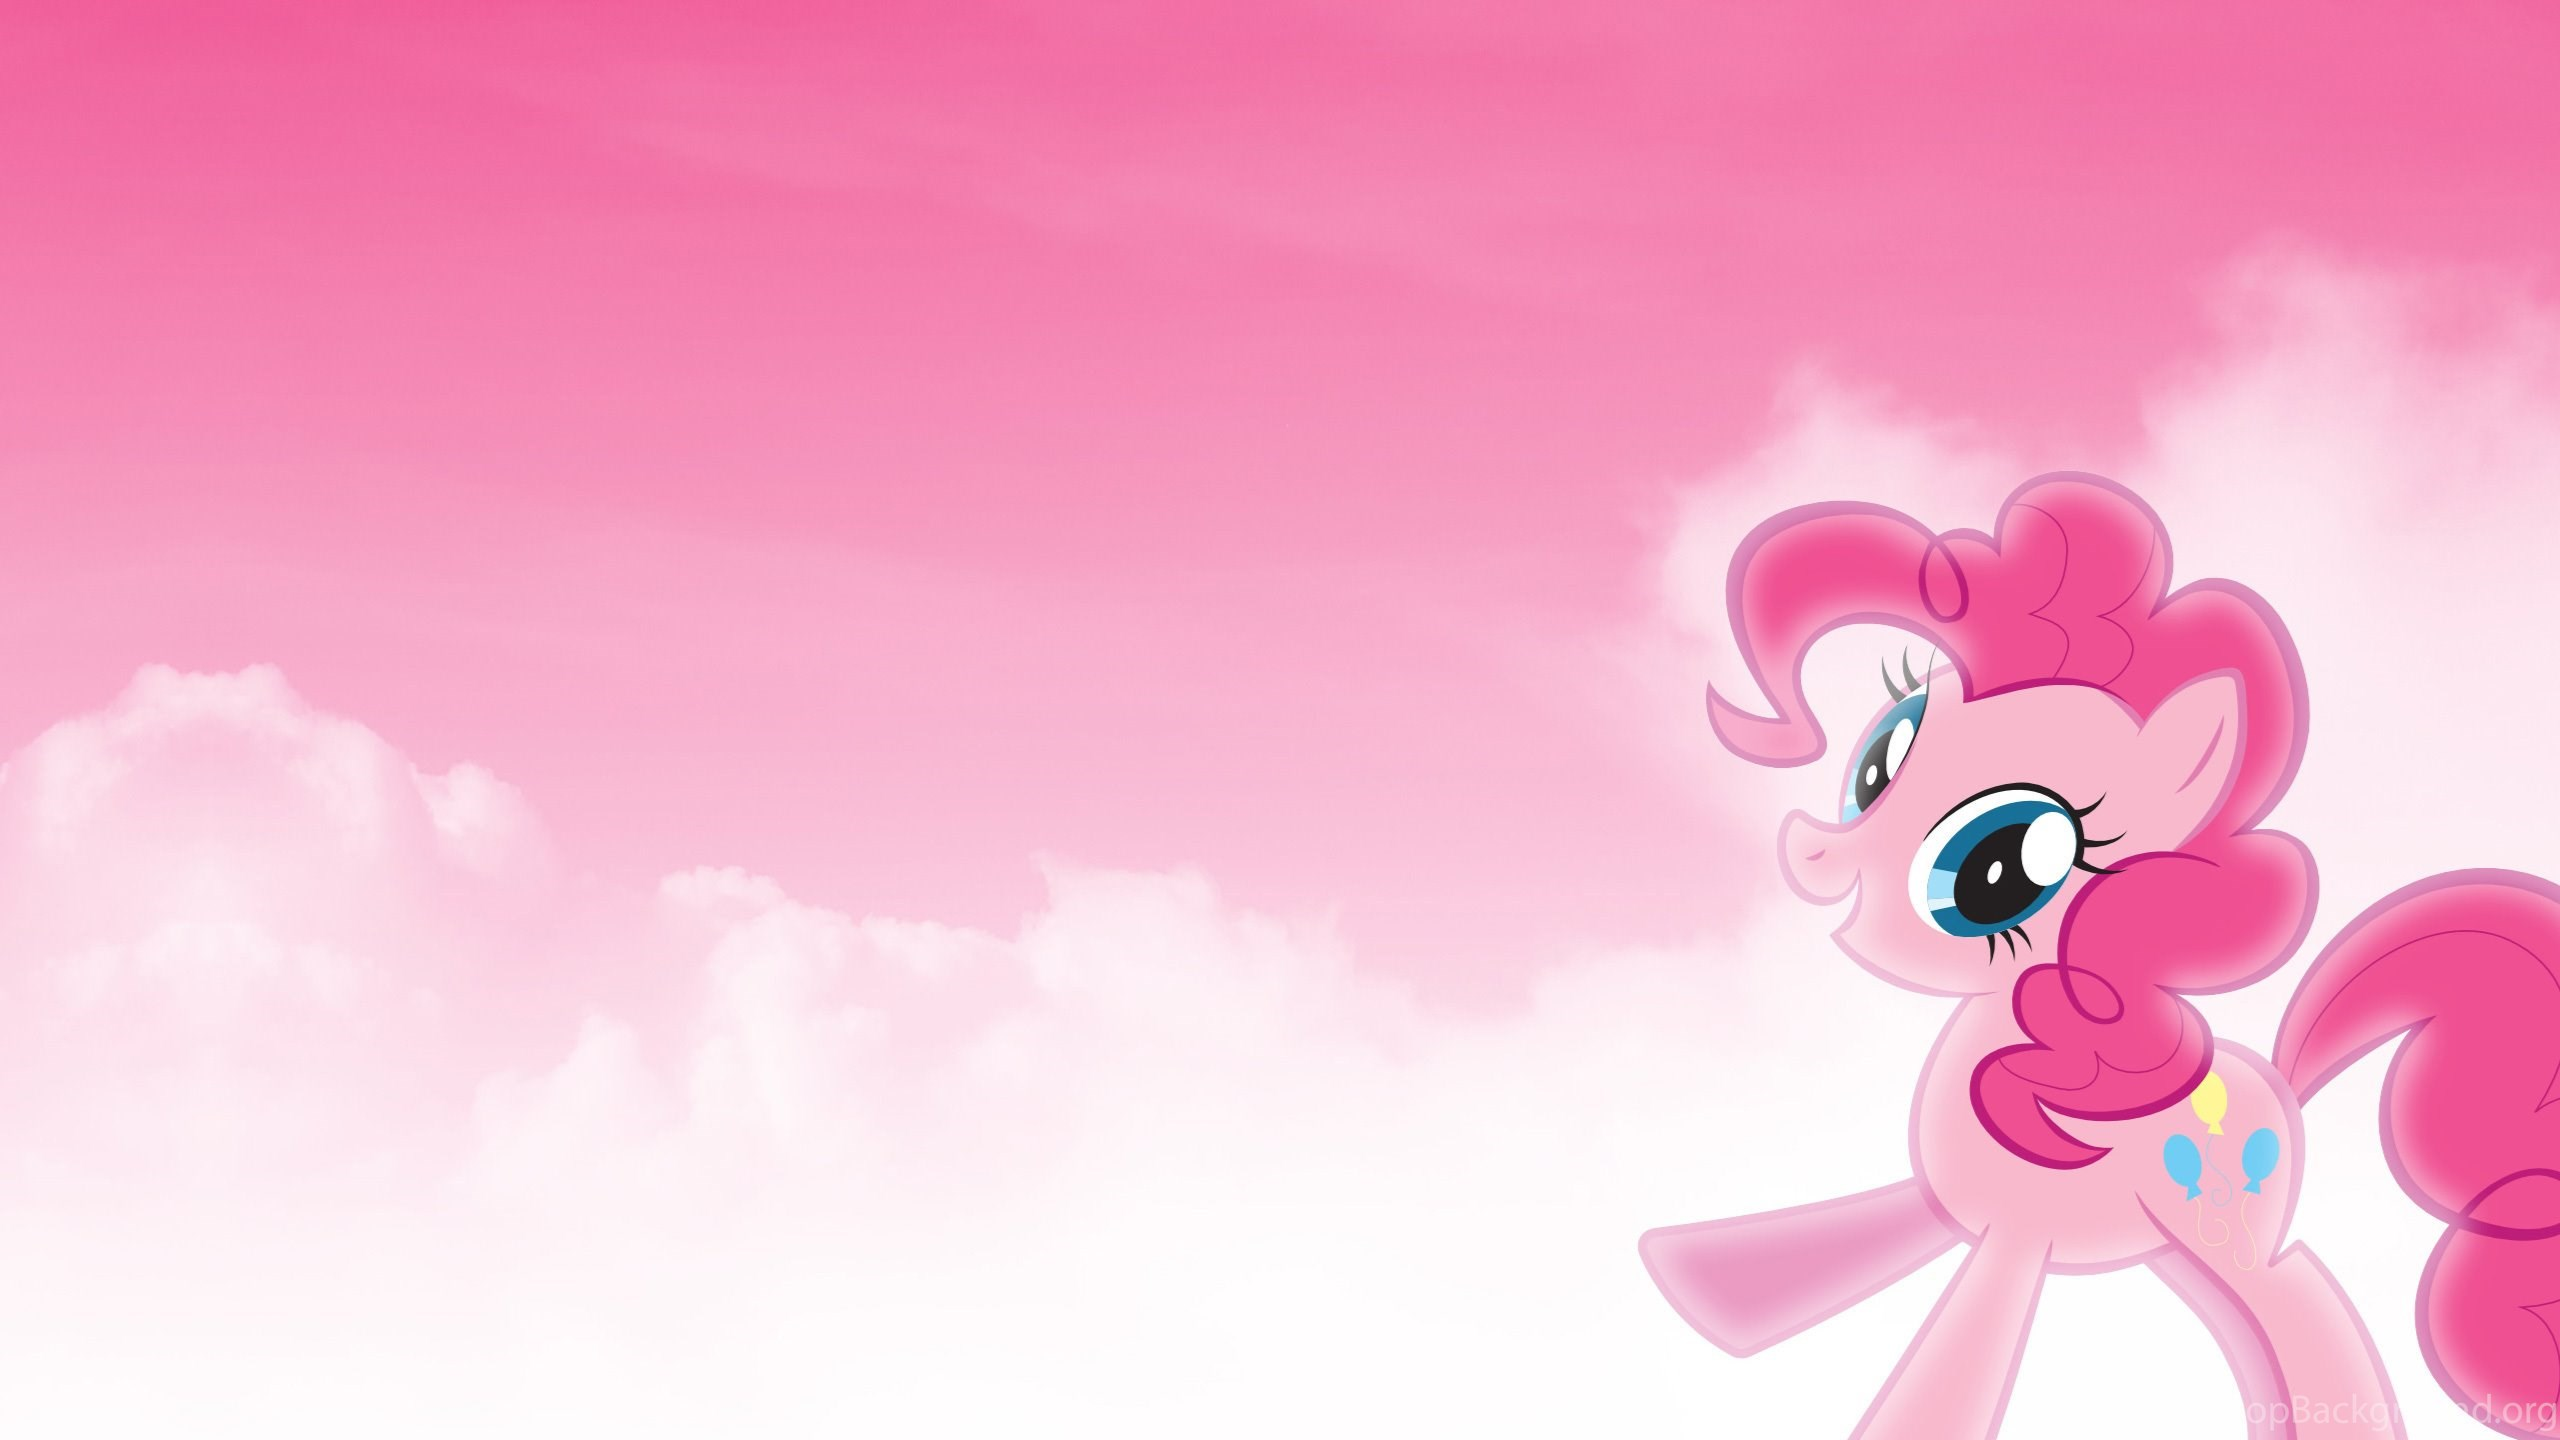 My Little Pony Friendship Is Magic Cartoon Full Hd Wallpapers For